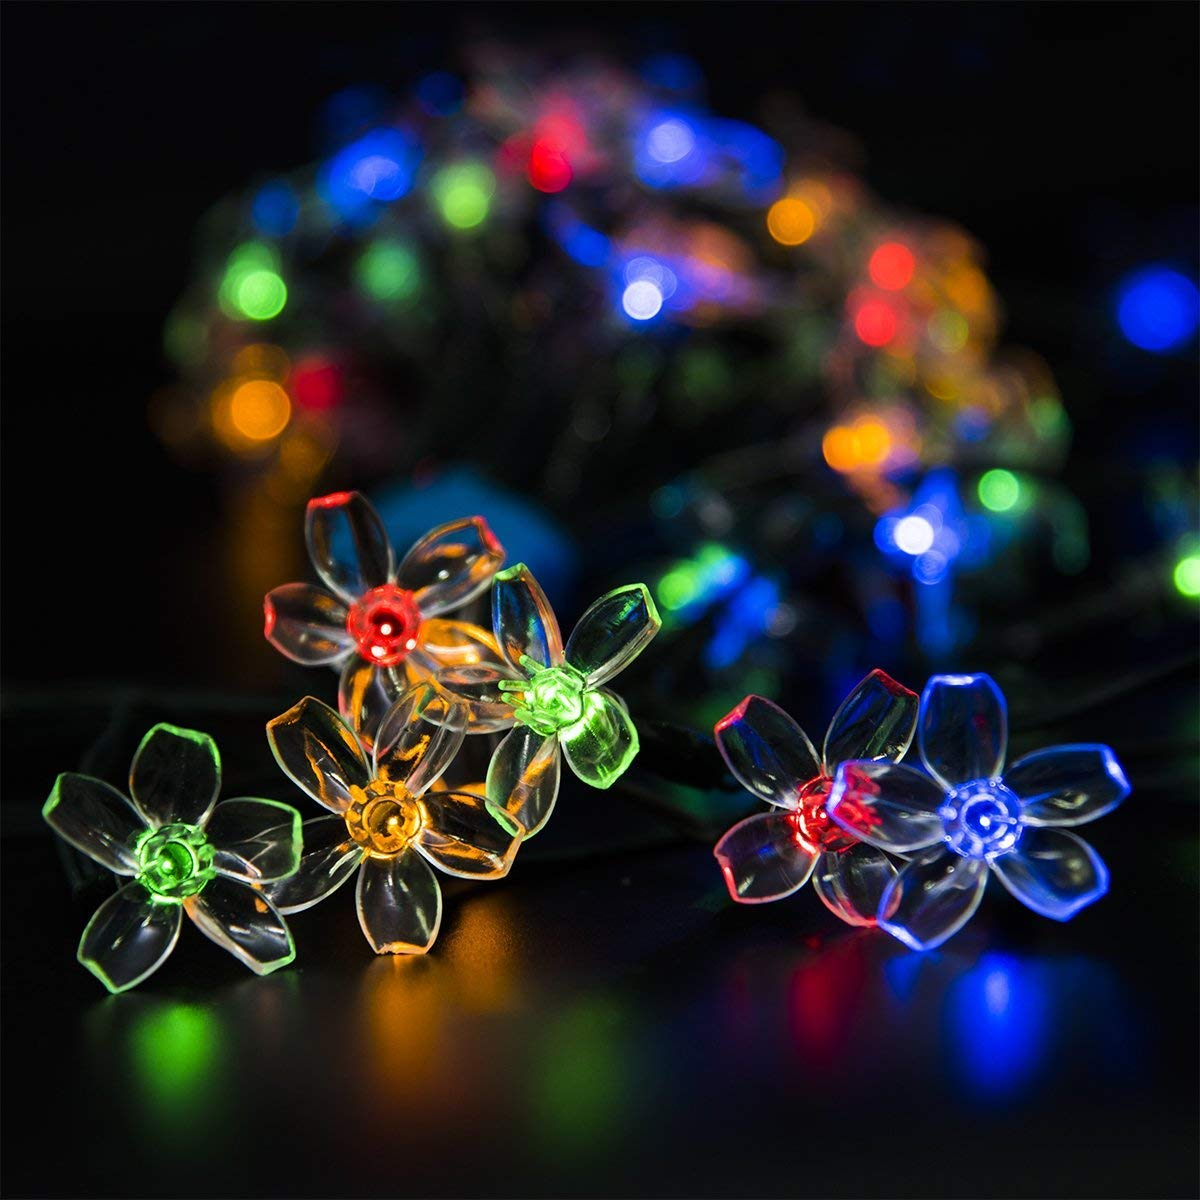 GIGALUMI 2 Pack Solar Strings Lights, Solar Fairy Lights 23 Feet 50 LED Flower Lights, Garden Lights for Outdoor, Home, Lawn, Wedding, Patio, Party and Holiday Decorations- Multi Color